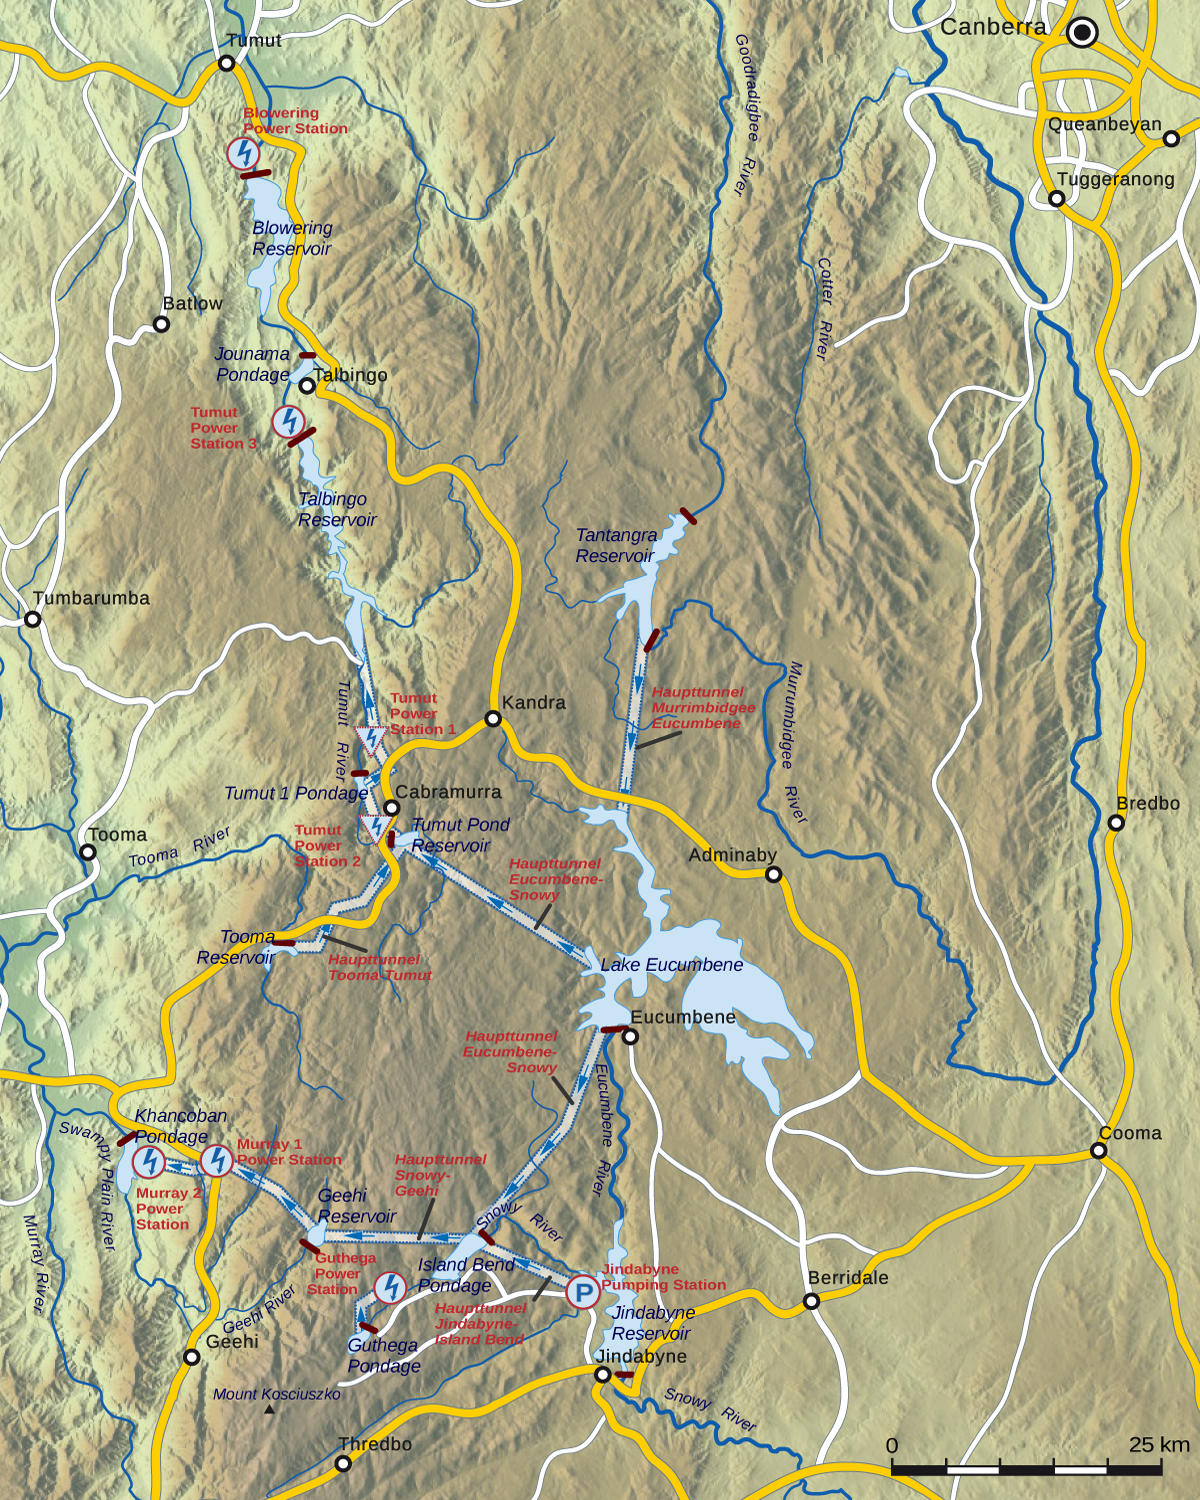 Snowy Mountains Scheme  Wikipedia